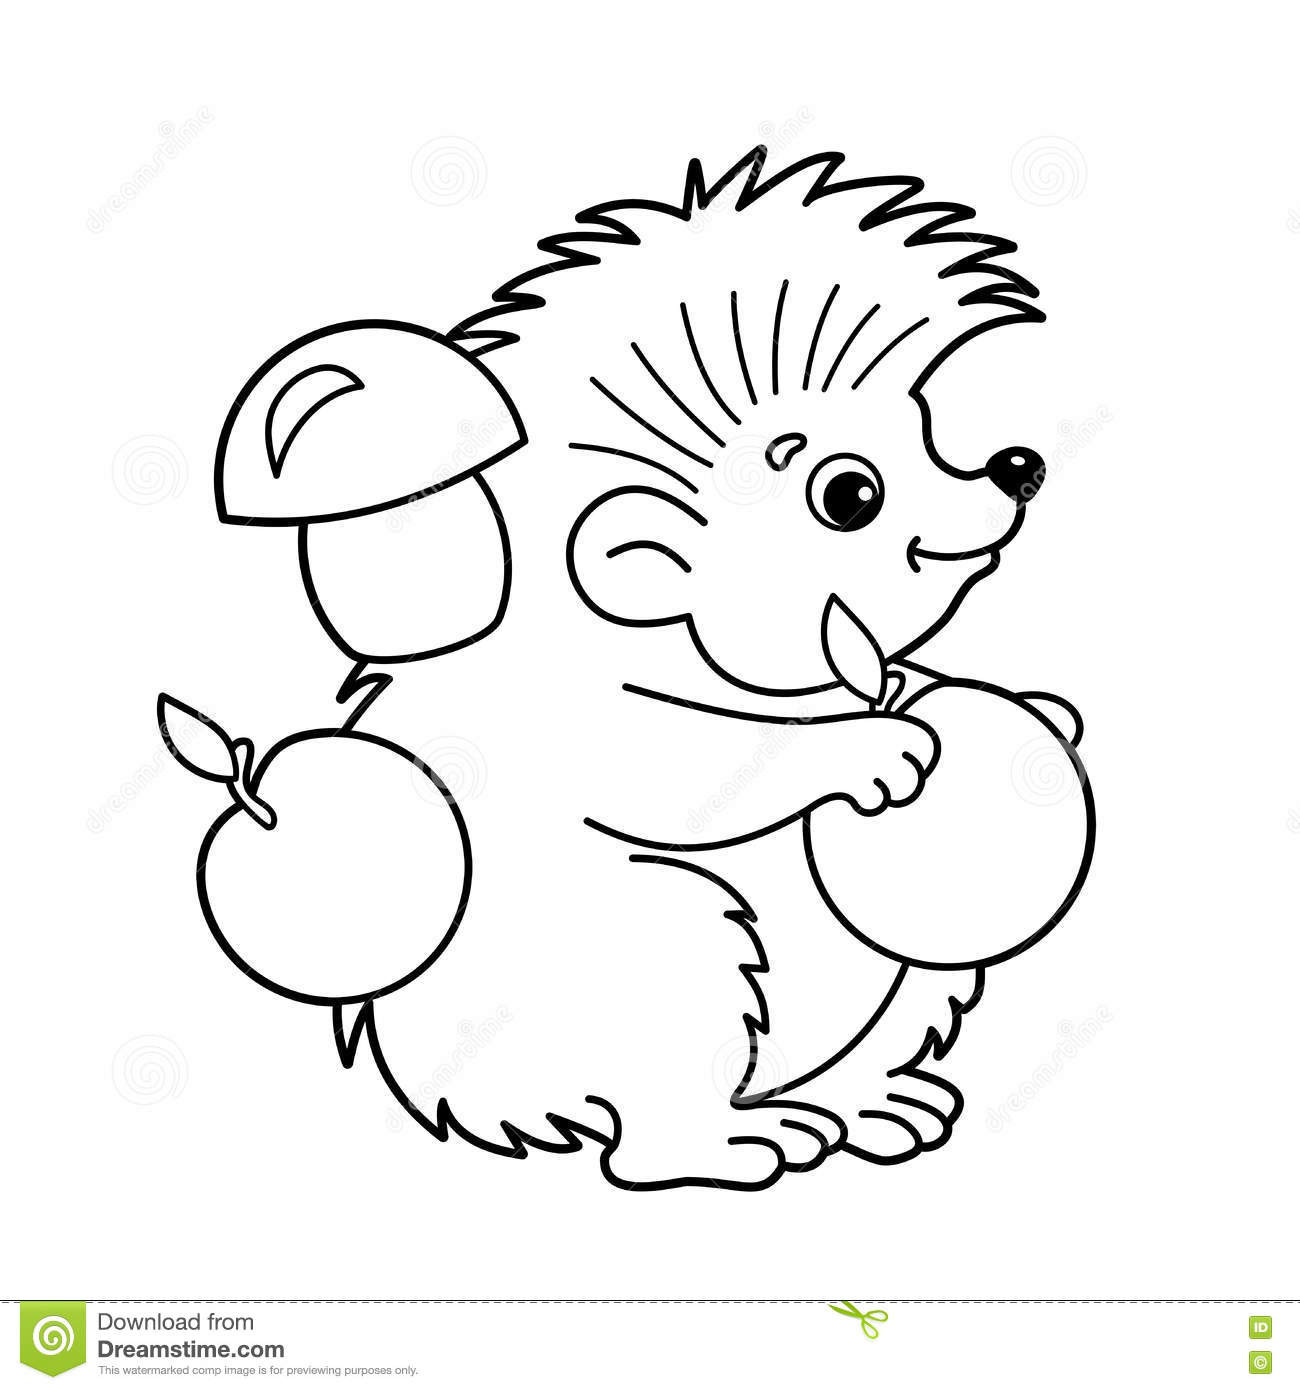 Hedgehog Coloring Pages  Hedgehog clipart coloring page Pencil and in color